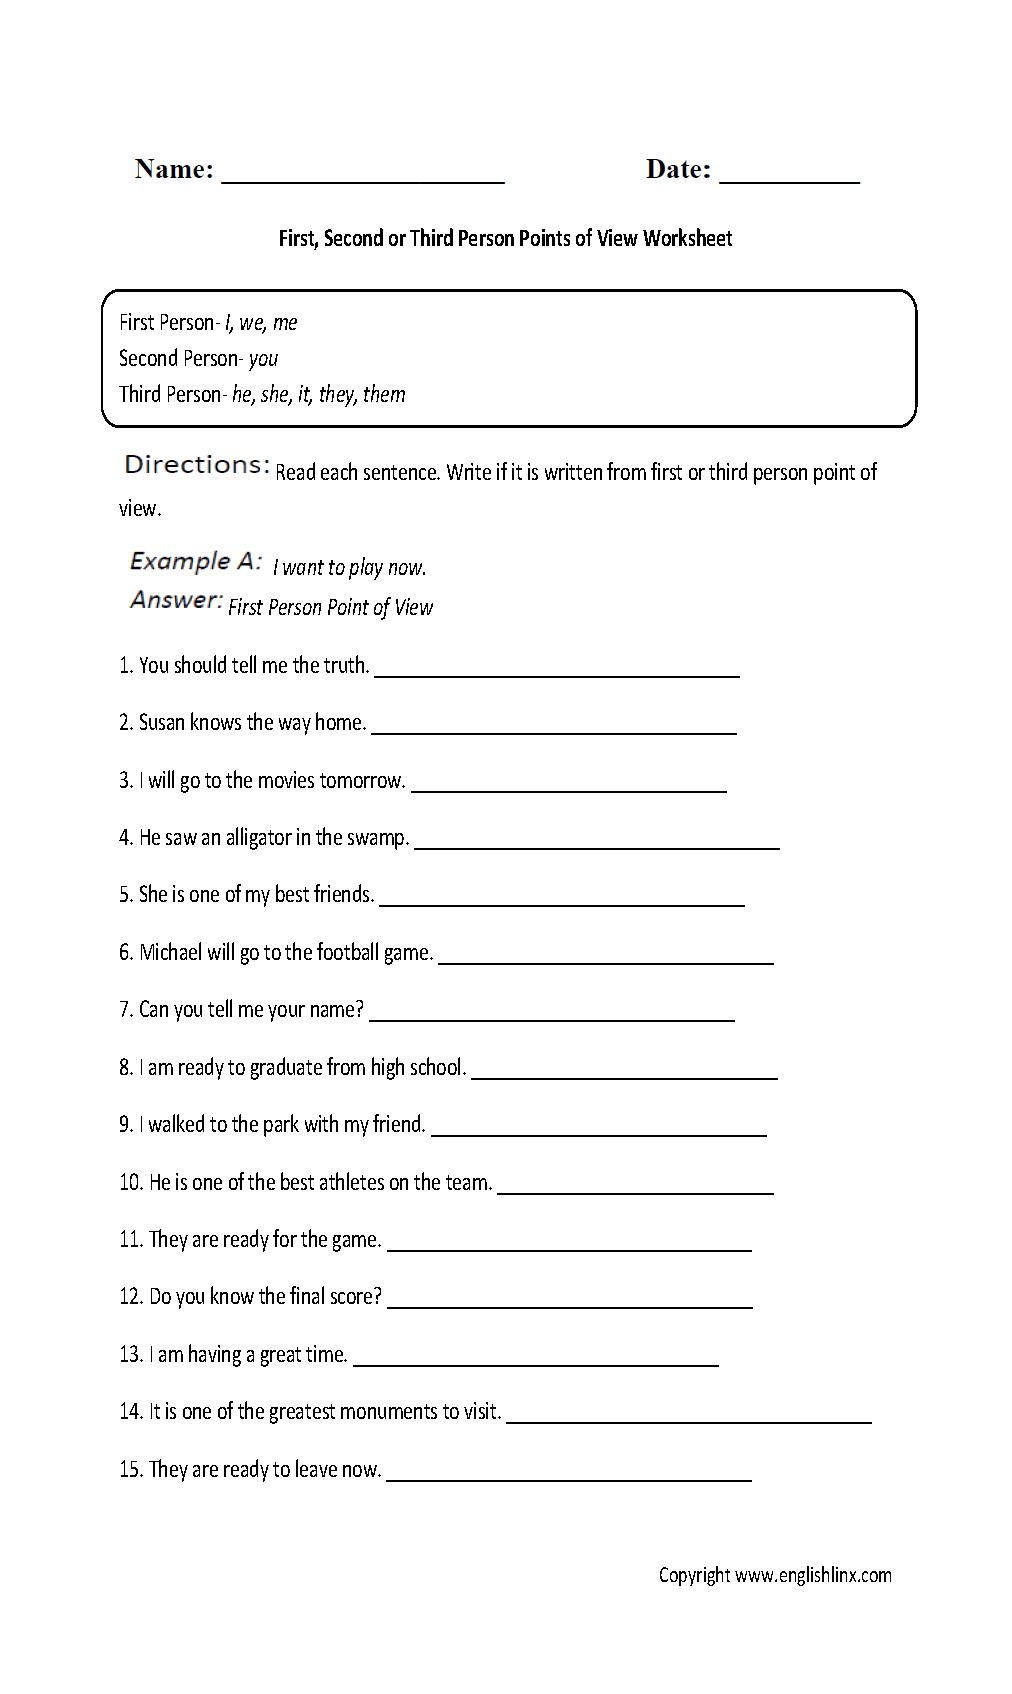 Proatmealus  Marvelous Englishlinxcom  Point Of View Worksheets With Handsome Point Of View Worksheet With Adorable  Continents Of The World Worksheet Also Telling Time Spanish Worksheet In Addition Bus Stop Division Worksheet And Subtraction Puzzle Worksheets As Well As This That These And Those Worksheets Additionally Worksheets For Grade  From Englishlinxcom With Proatmealus  Handsome Englishlinxcom  Point Of View Worksheets With Adorable Point Of View Worksheet And Marvelous  Continents Of The World Worksheet Also Telling Time Spanish Worksheet In Addition Bus Stop Division Worksheet From Englishlinxcom